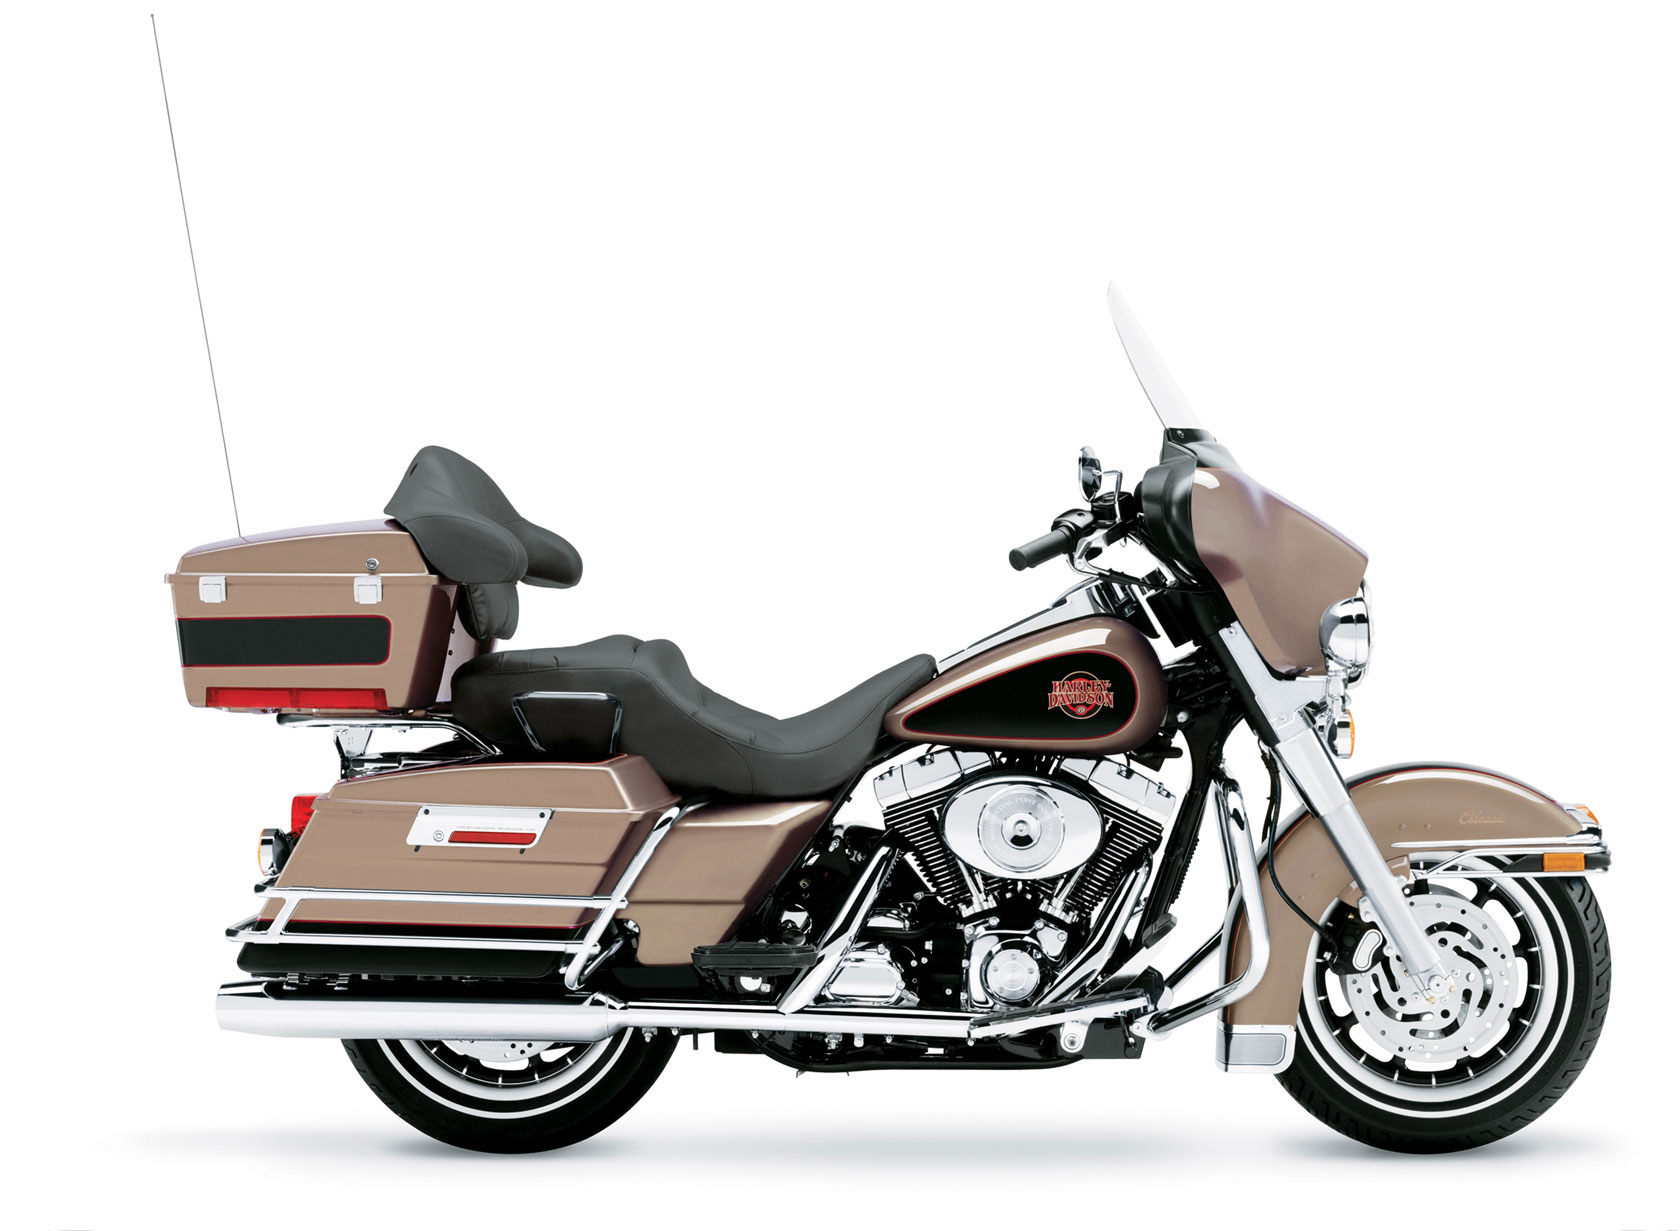 2004 Harley Davidson Flhtc I Electra Glide Classic